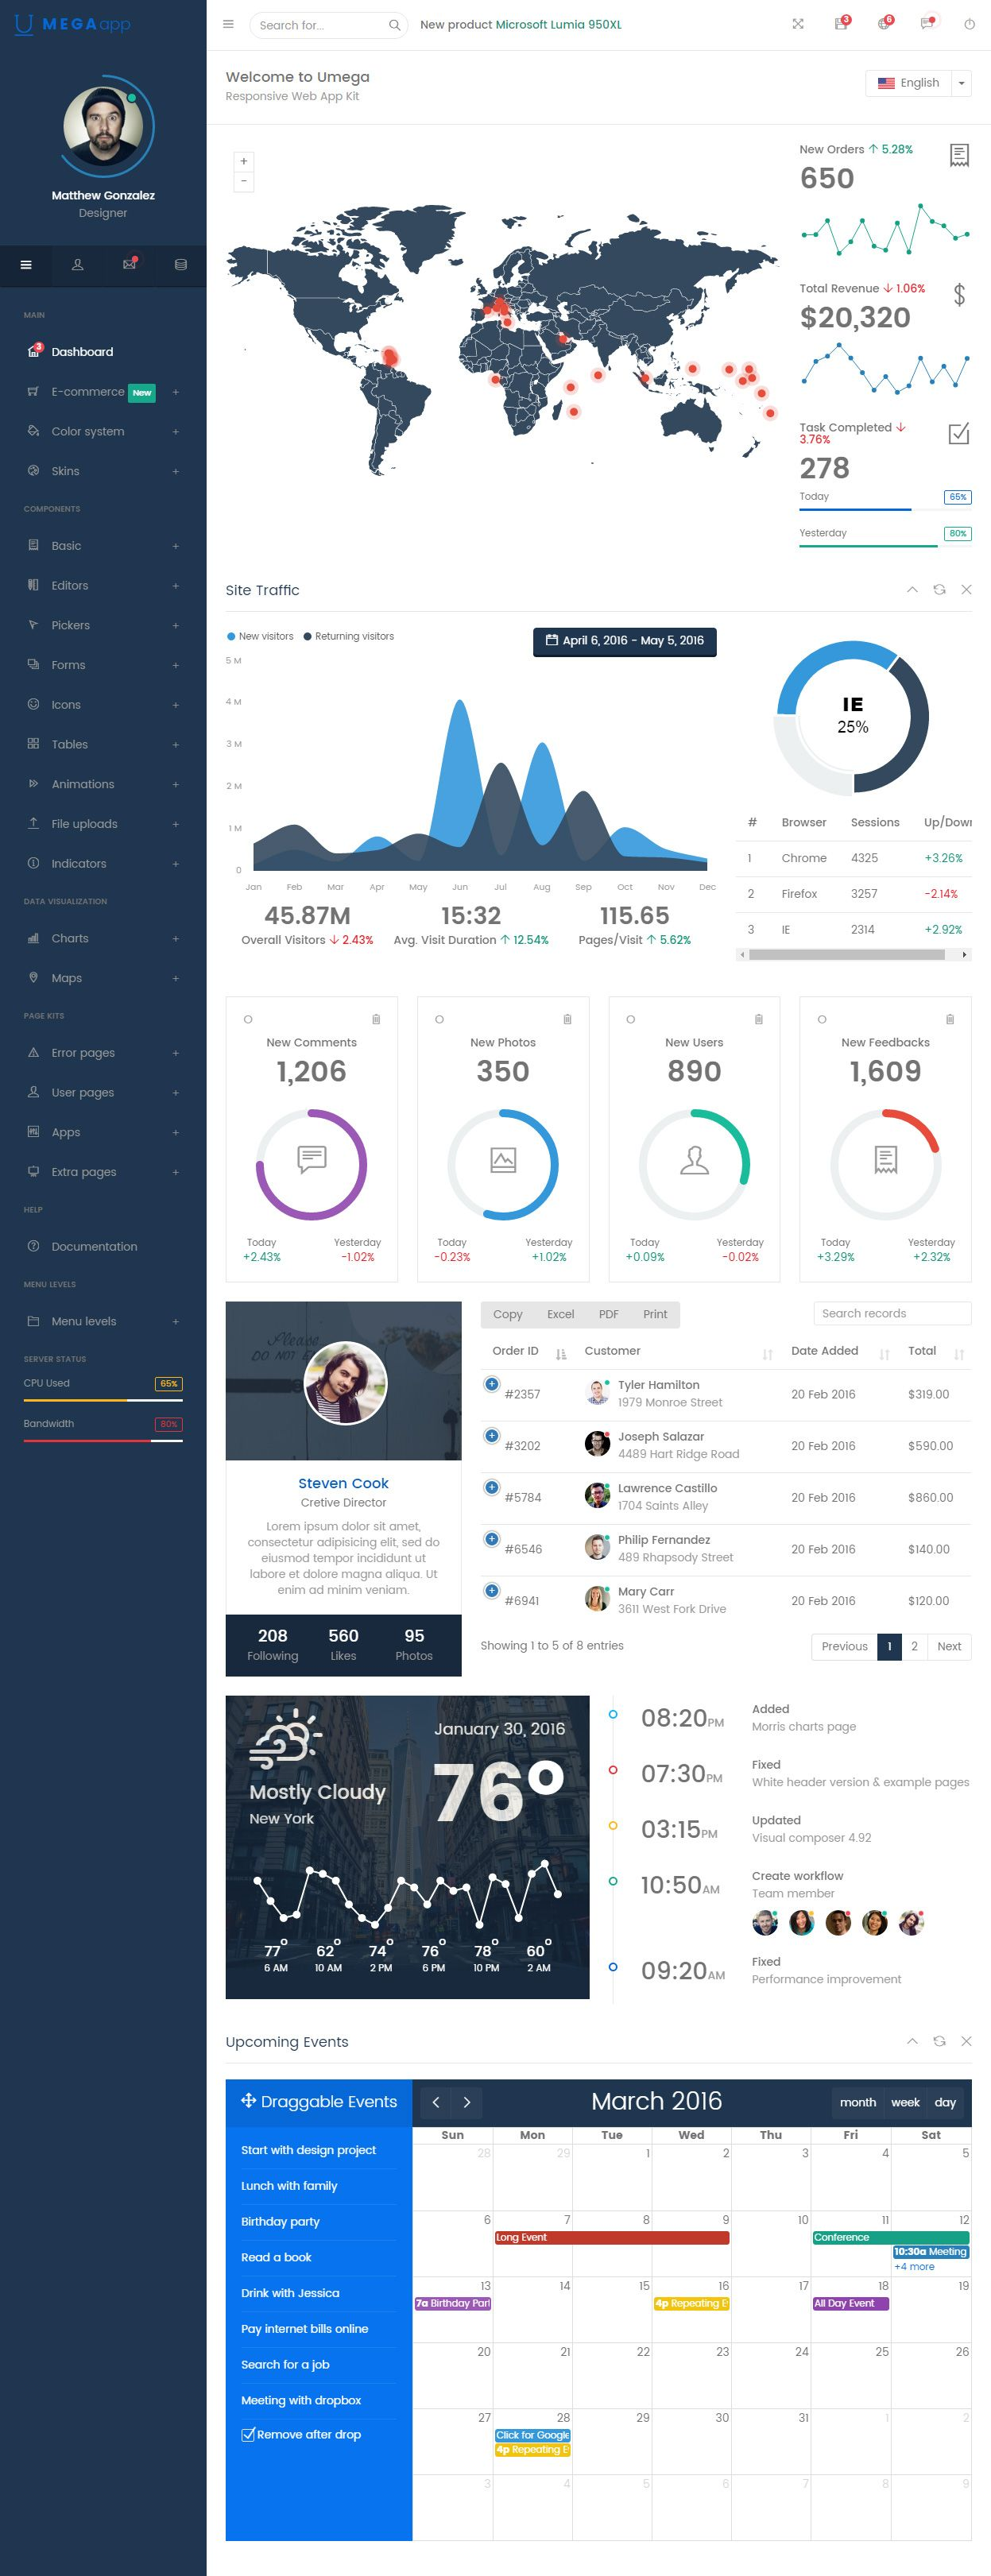 Umega is Premium full Responsive Admin #dashboard #HTML5 template ...